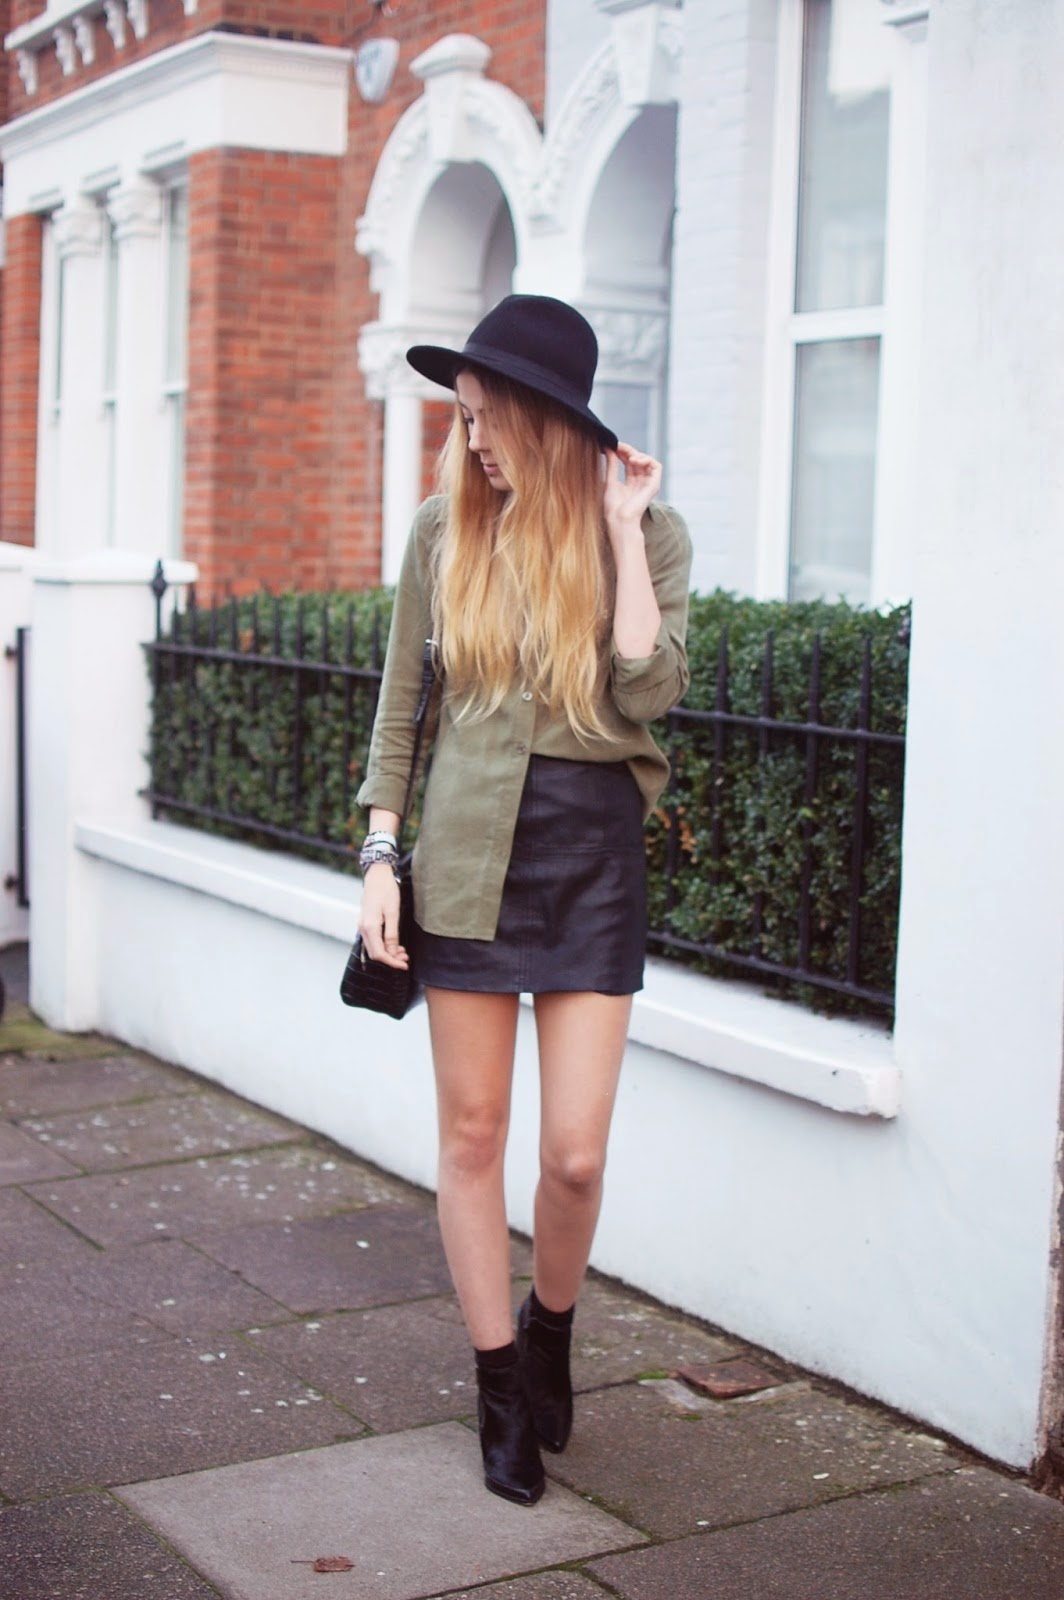 uk street style fashion blogger georgia luisa meramo